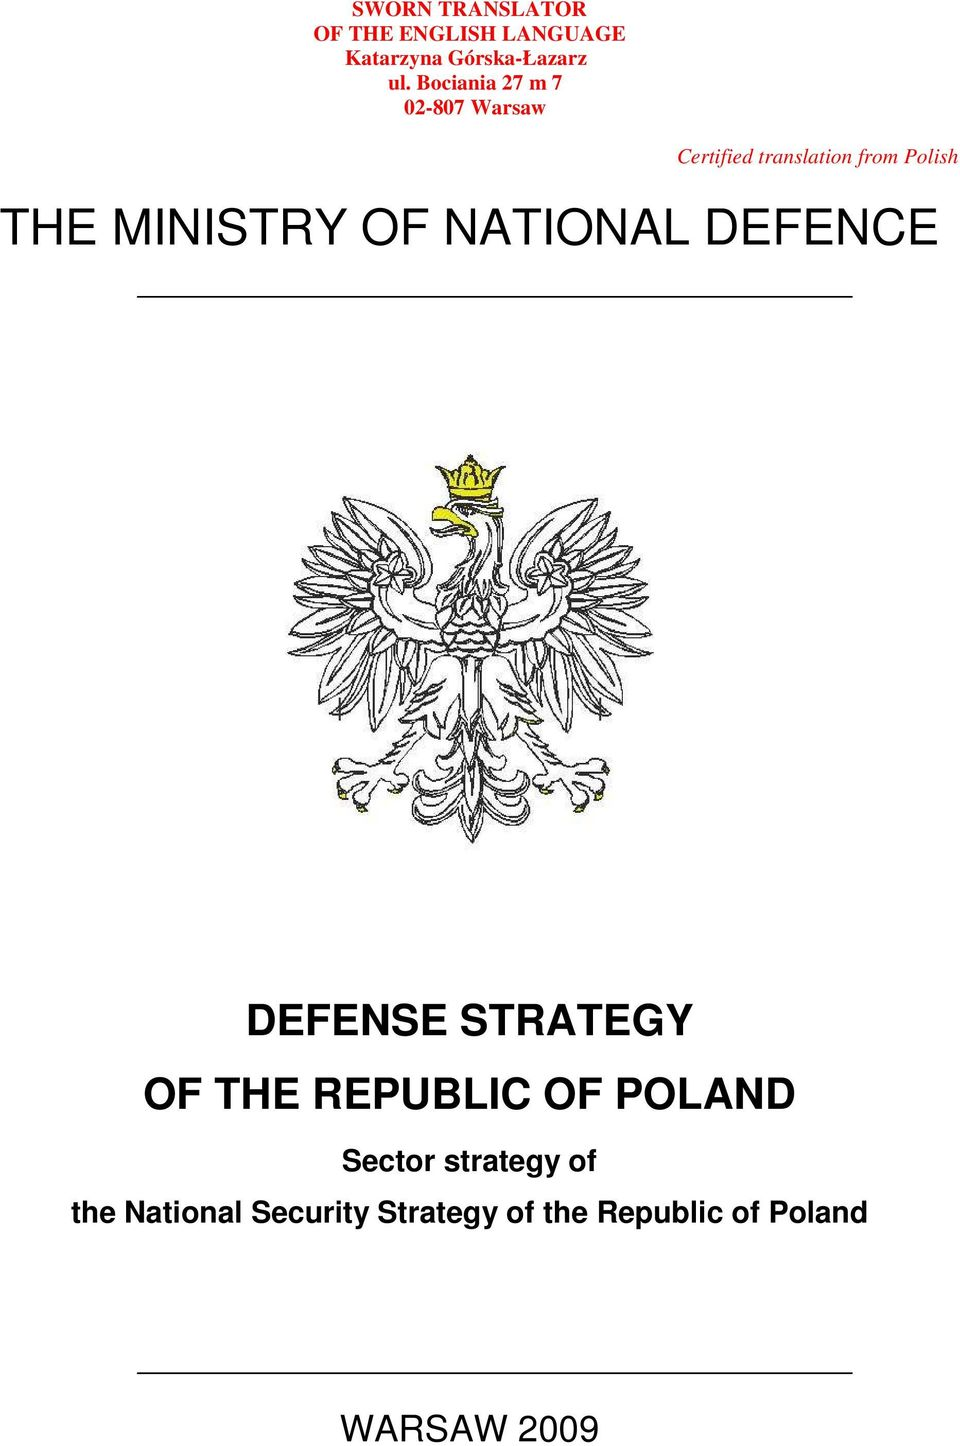 MINISTRY OF NATIONAL DEFENCE DEFENSE STRATEGY OF THE REPUBLIC OF POLAND